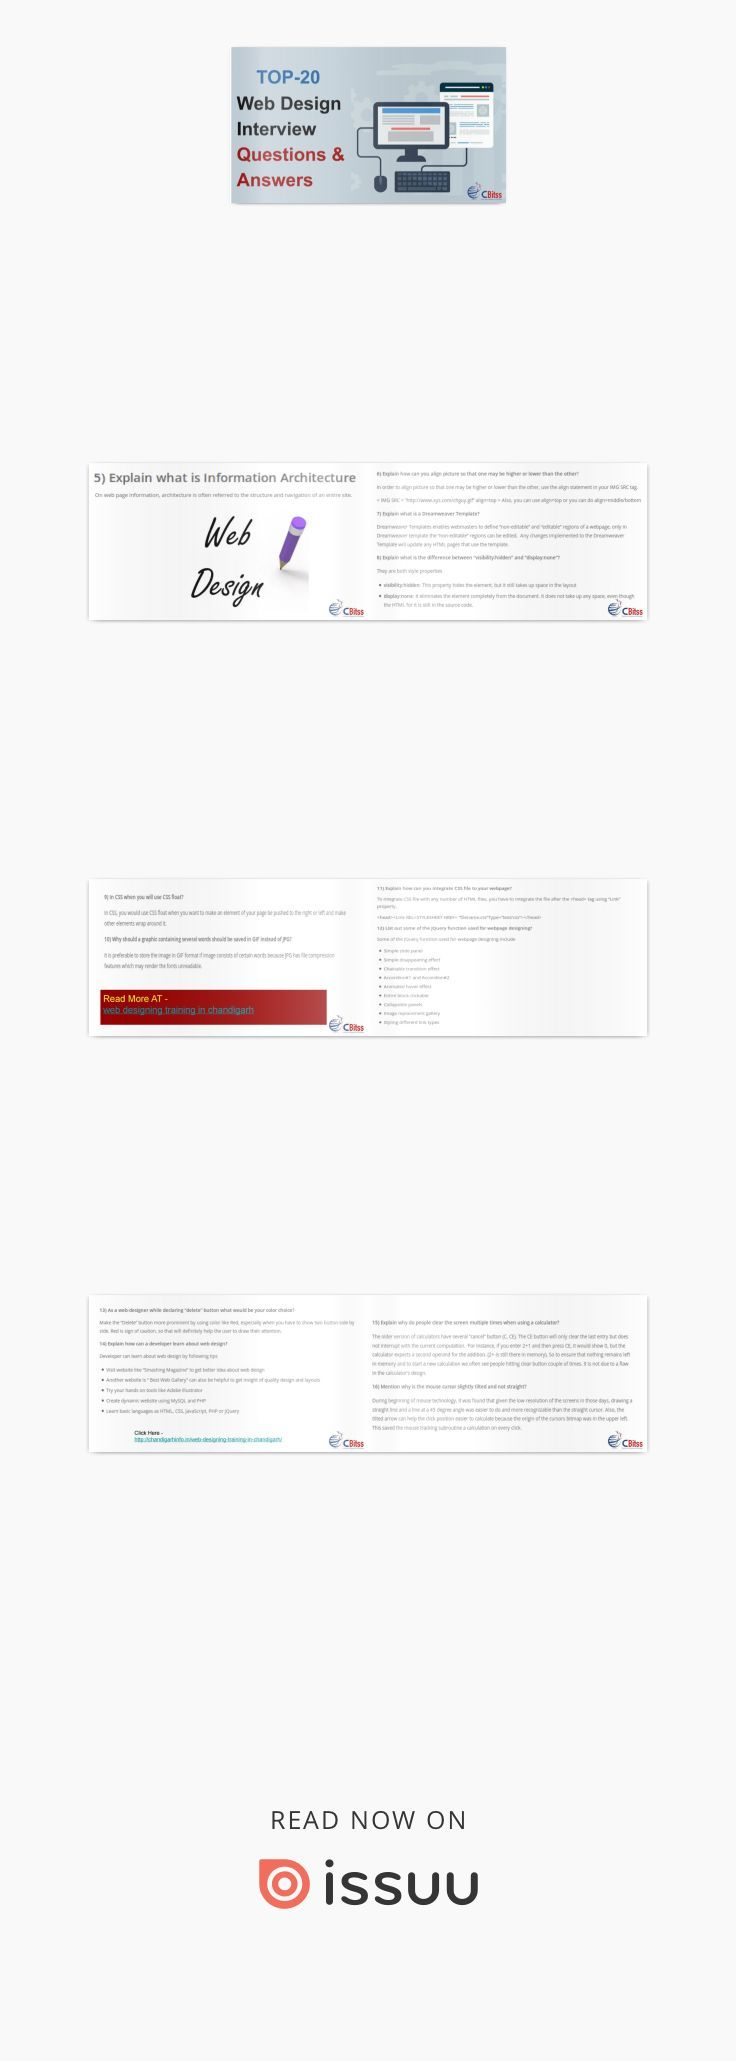 Top 20 Web Design Interview Questions Answers Web Design Web Design Quotes Interview Questions